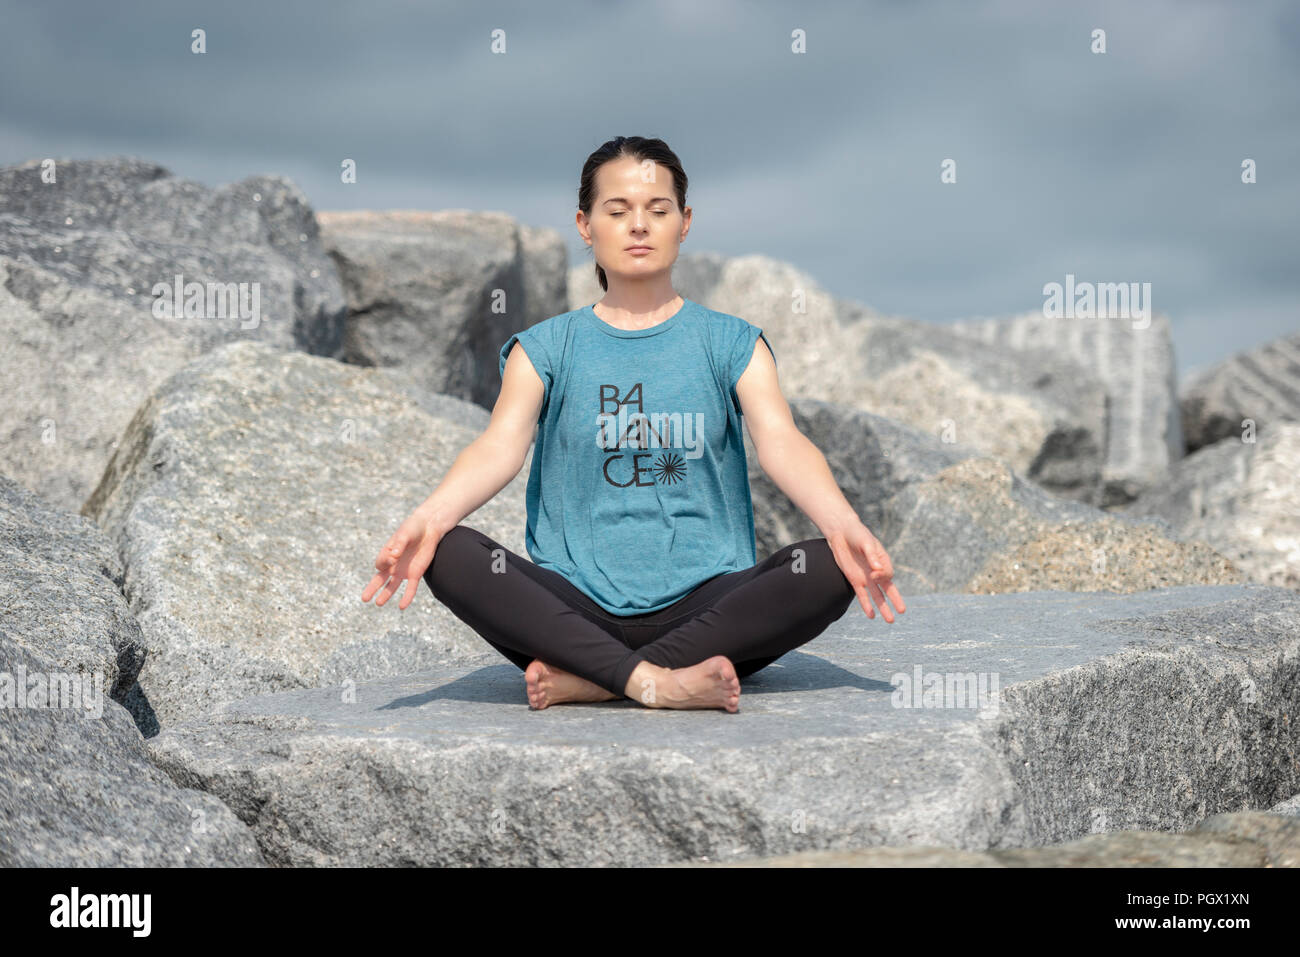 woman sitting meditating outside on rocks, wearing a tshirt with 'balance' slogan. - Stock Image